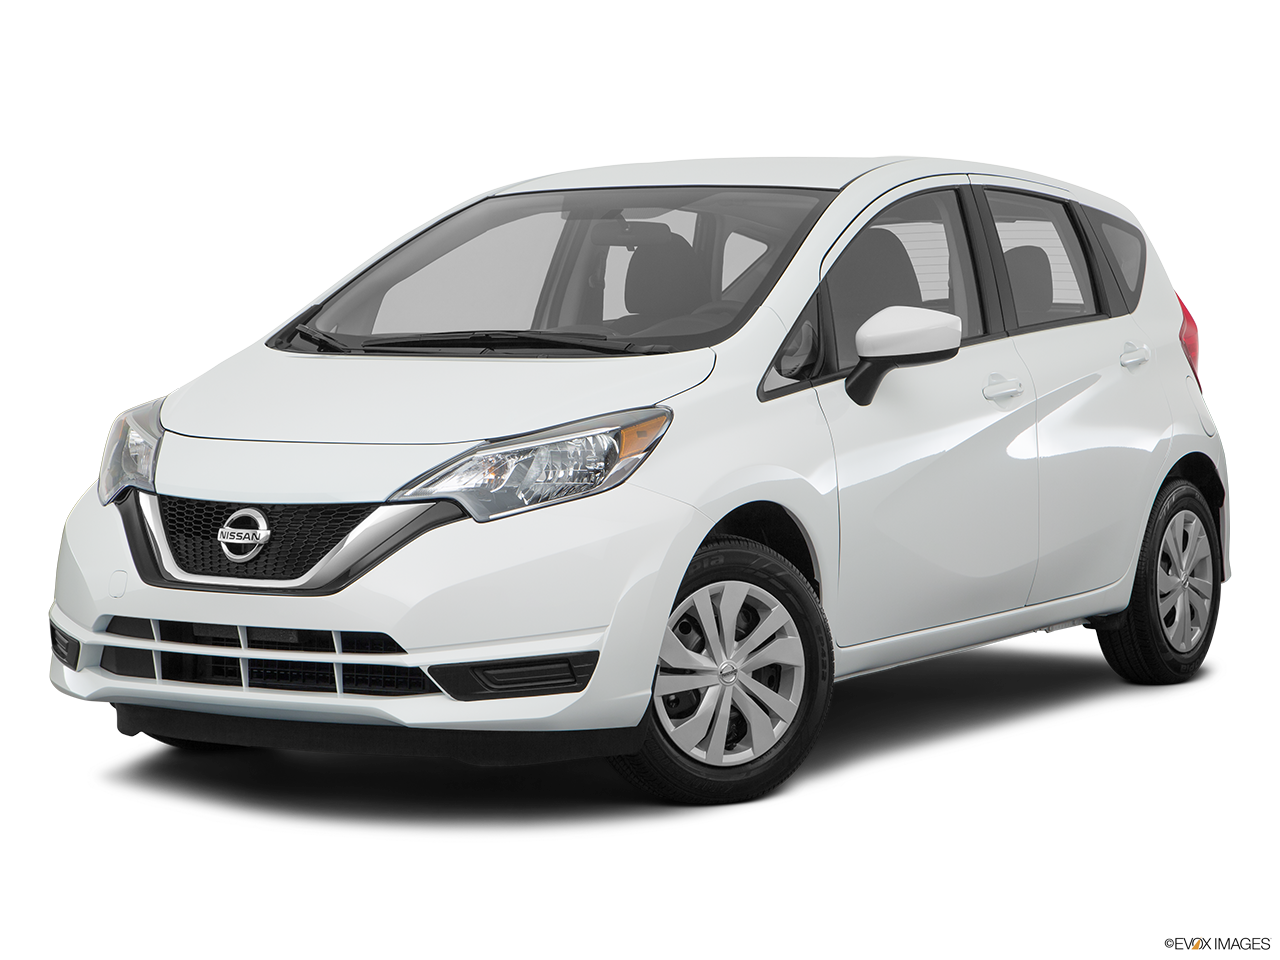 Test Drive A 2017 Nissan Versa® Note® at Empire Nissan in Ontario